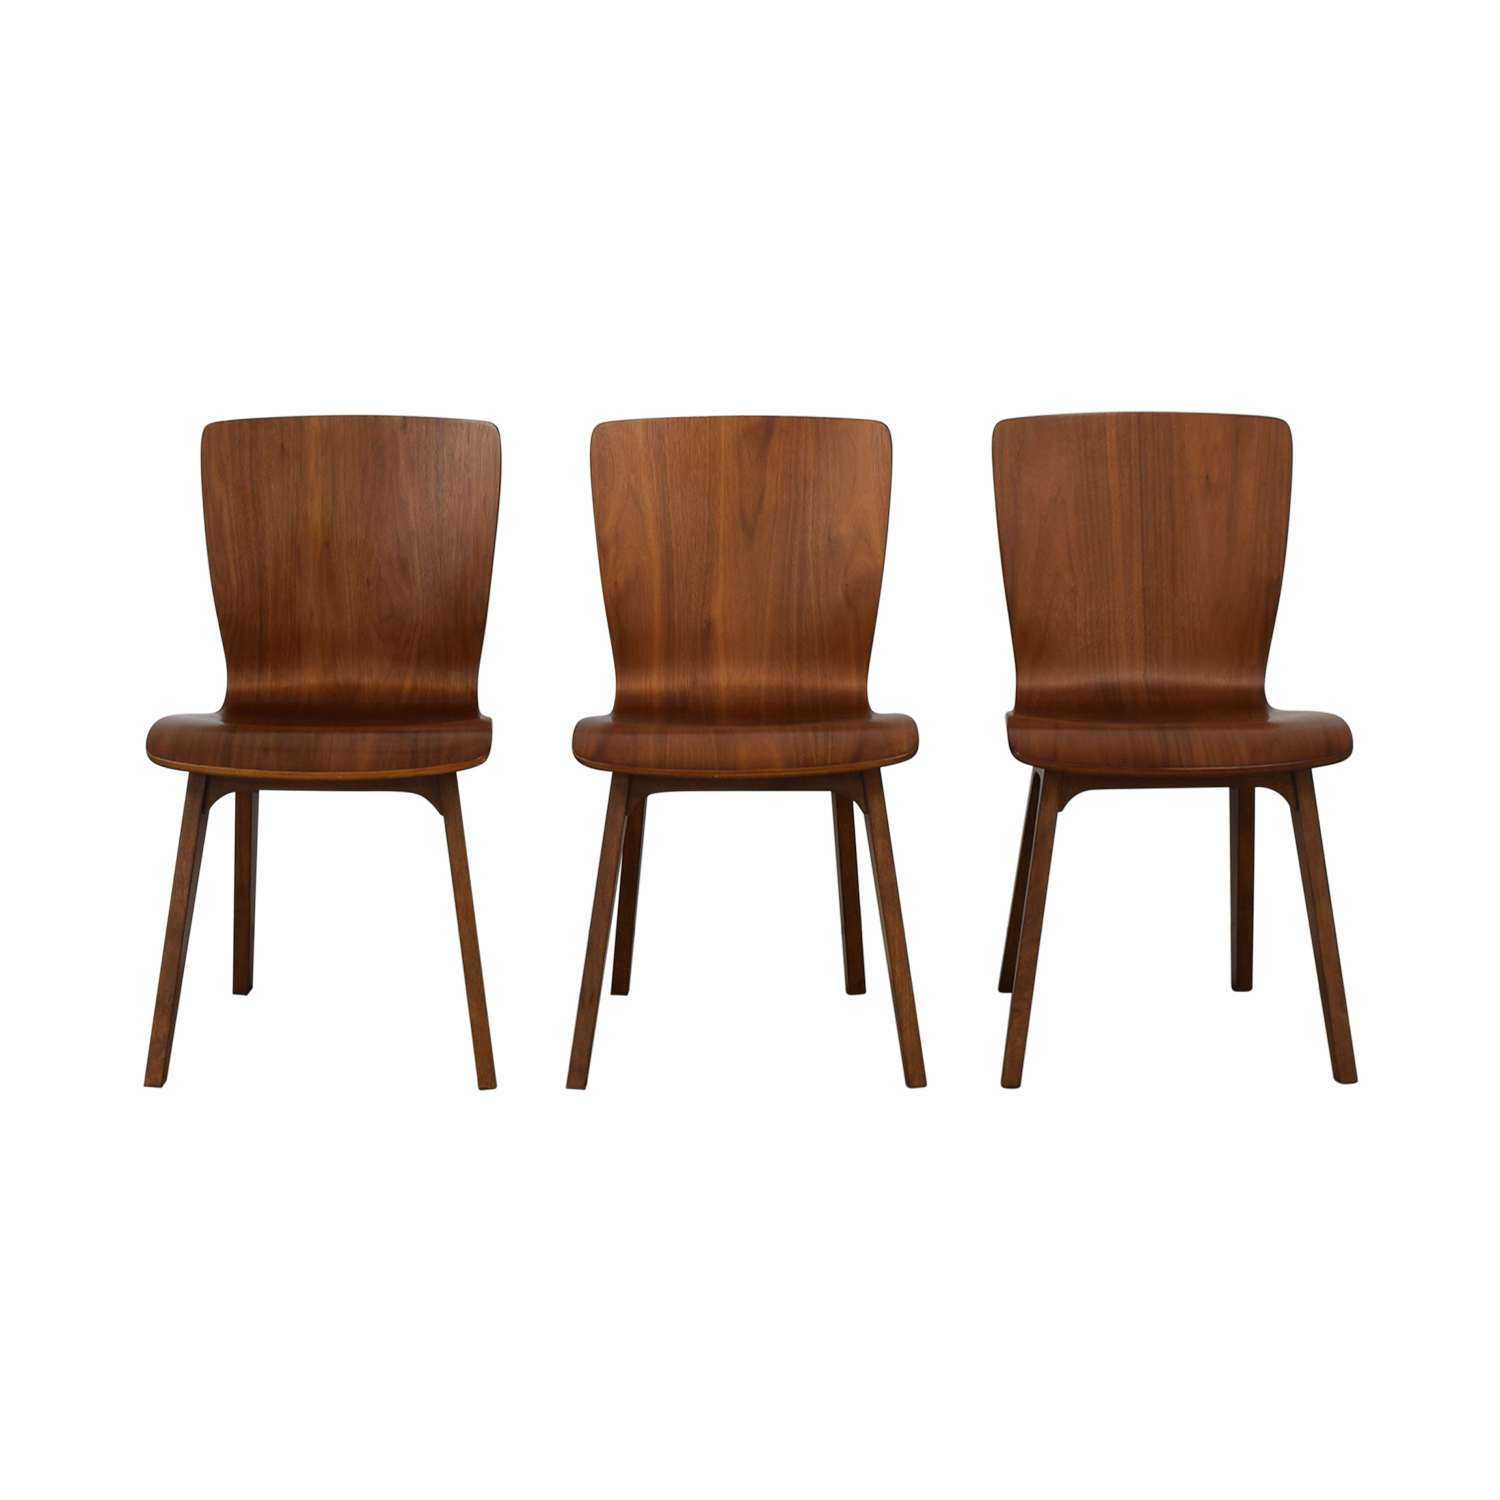 West Elm West Elm Crest Bentwood Dining Chairs Chairs